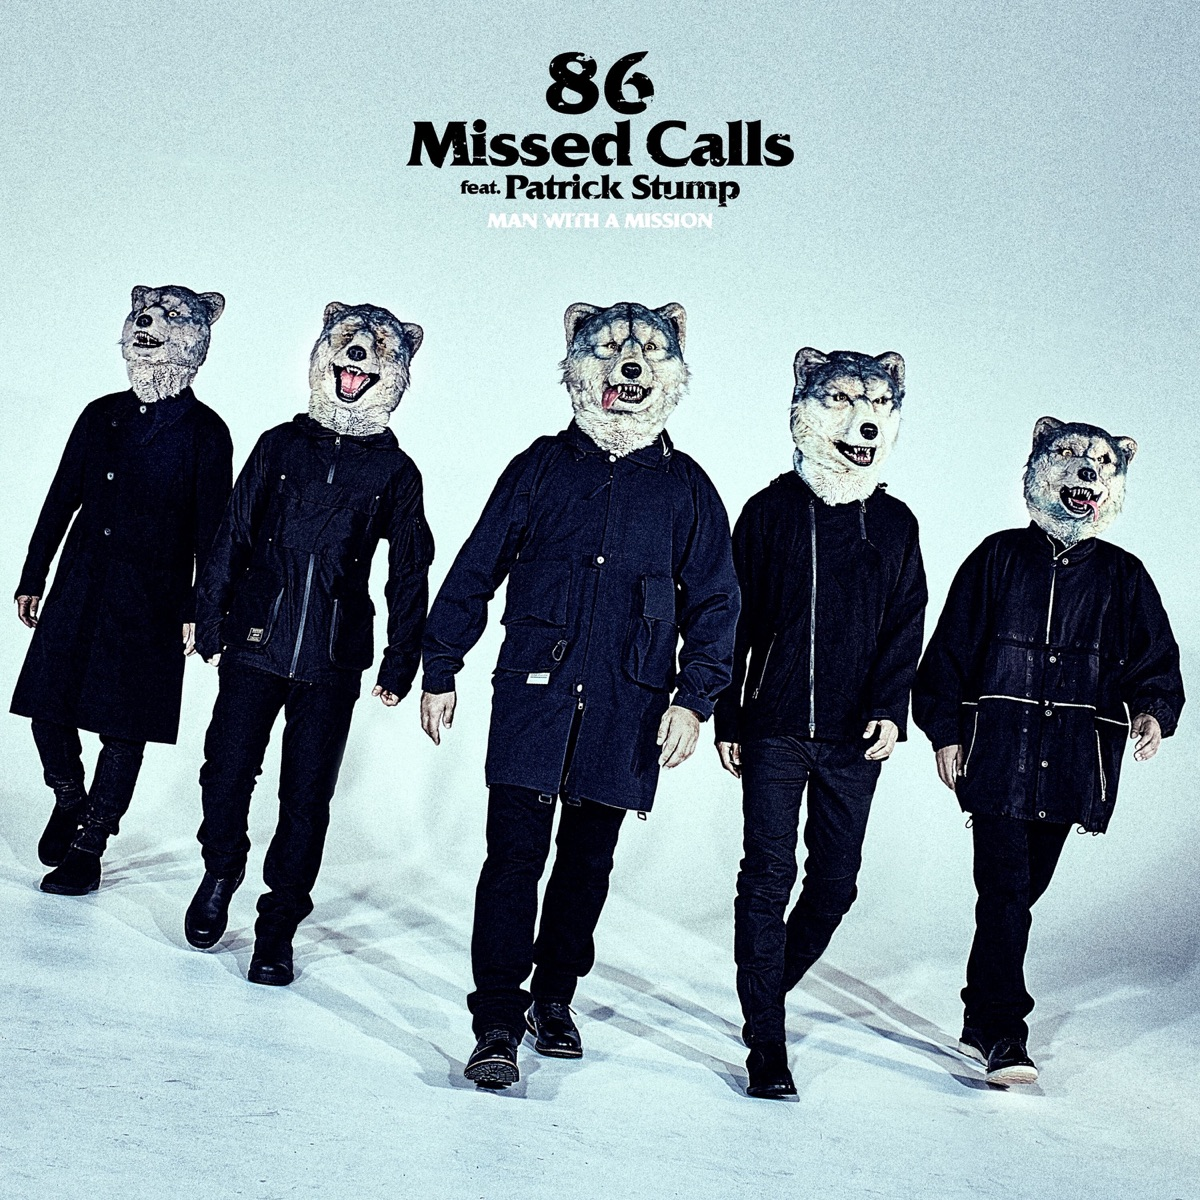 『MAN WITH A MISSION - 86 Missed Calls feat. Patrick Stump』収録の『86 Missed Calls feat. Patrick Stump』ジャケット